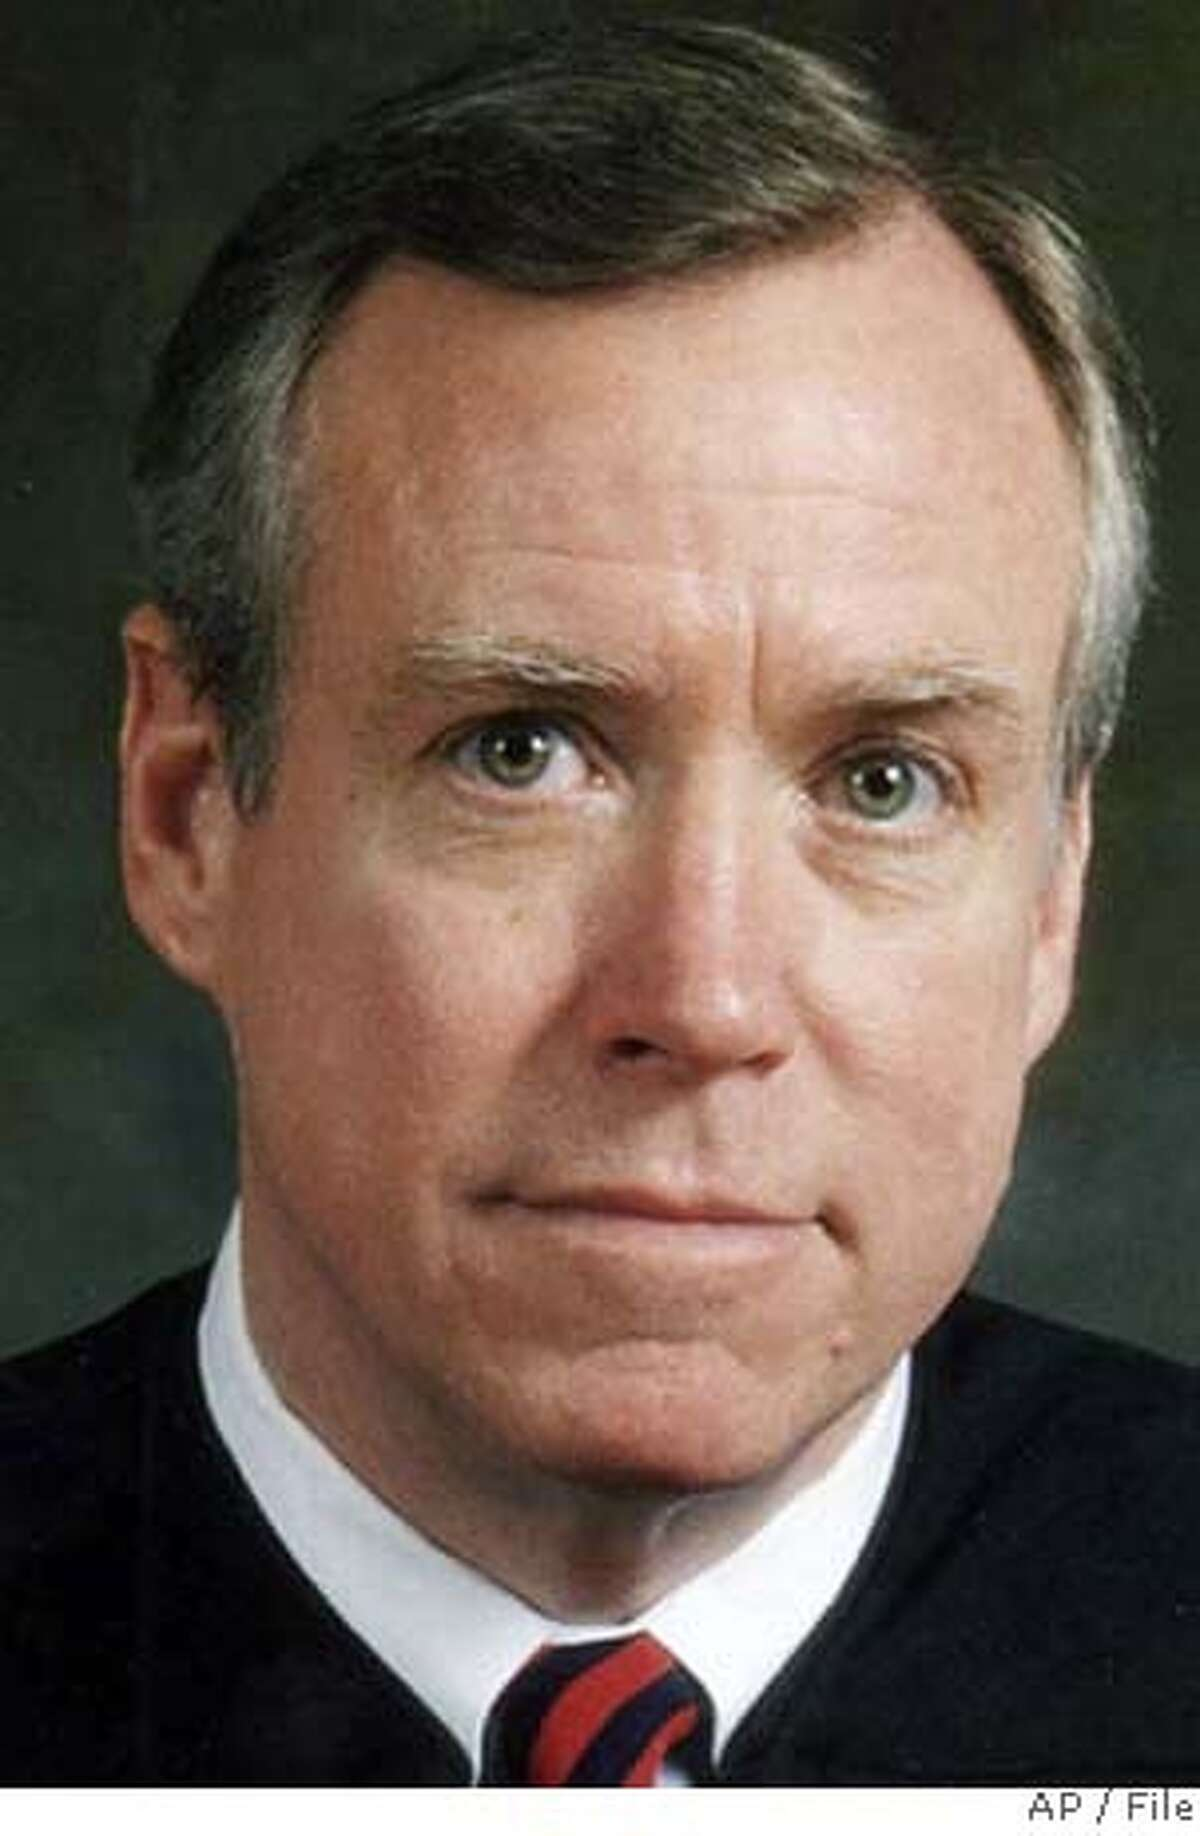 ** FILE ** This undated photo provided by the subject shows Michigan Appeals Judge William Murphy. Murphy says if a state law were enforced as written, adulterers could be charged under the section of the criminal code that prescribes life sentences for the worst rape cases. (AP Photo) ** ** PHOTO PROVIDED BY THE CANDIDATES